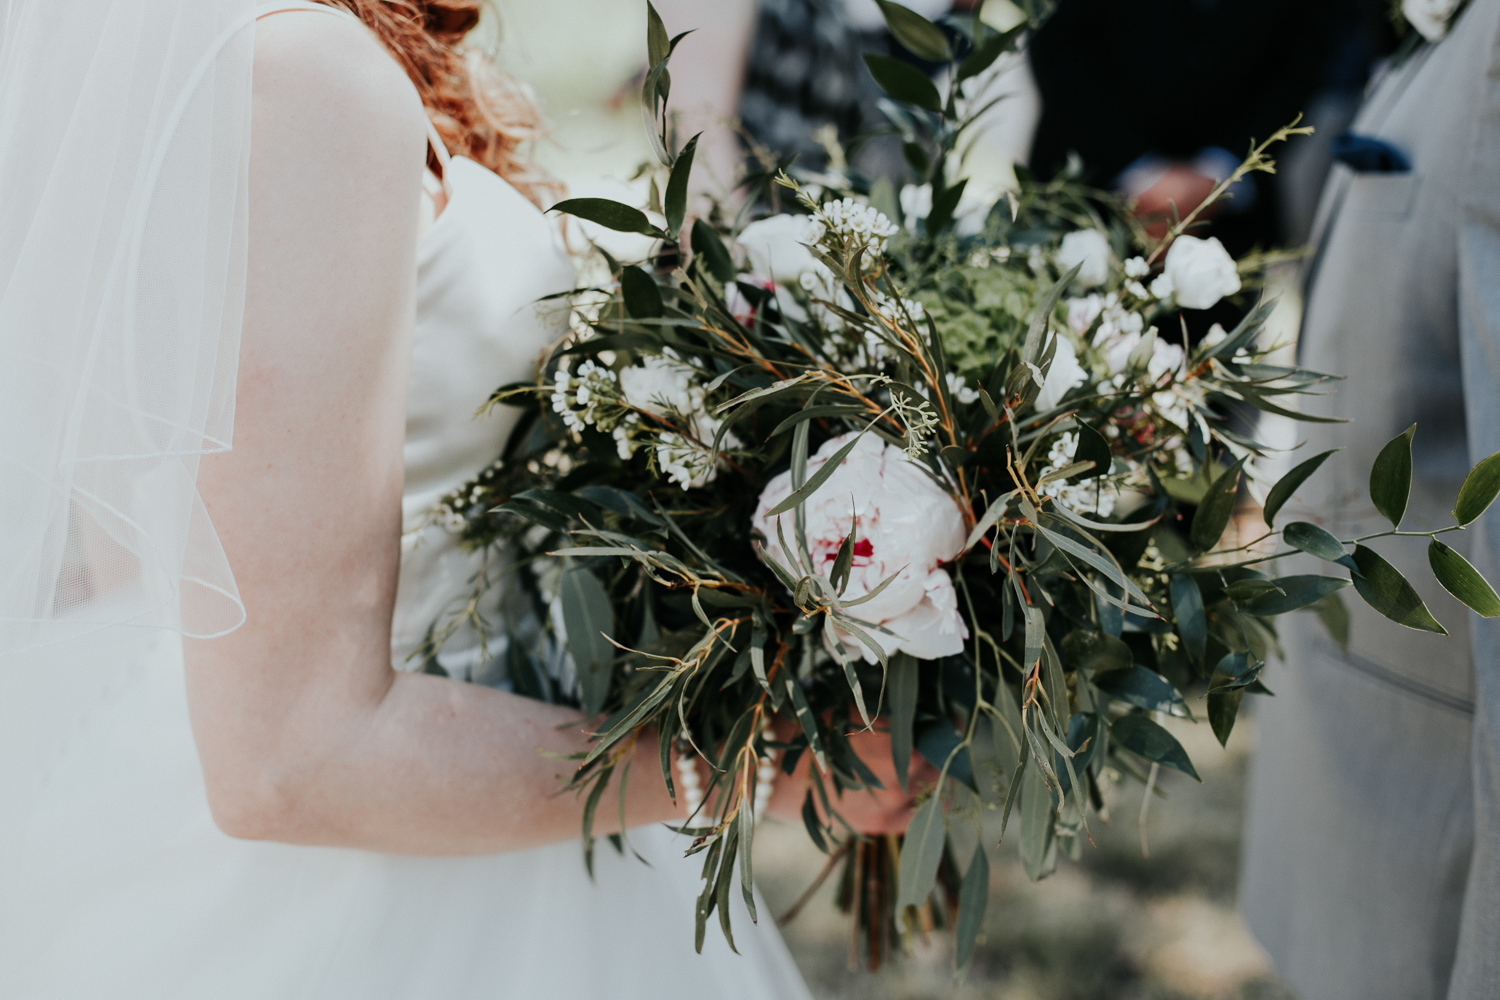 lethbridge-wedding-photographer-love-and-be-loved-photography-dan-tynnea-picture-image-photo-72.jpg